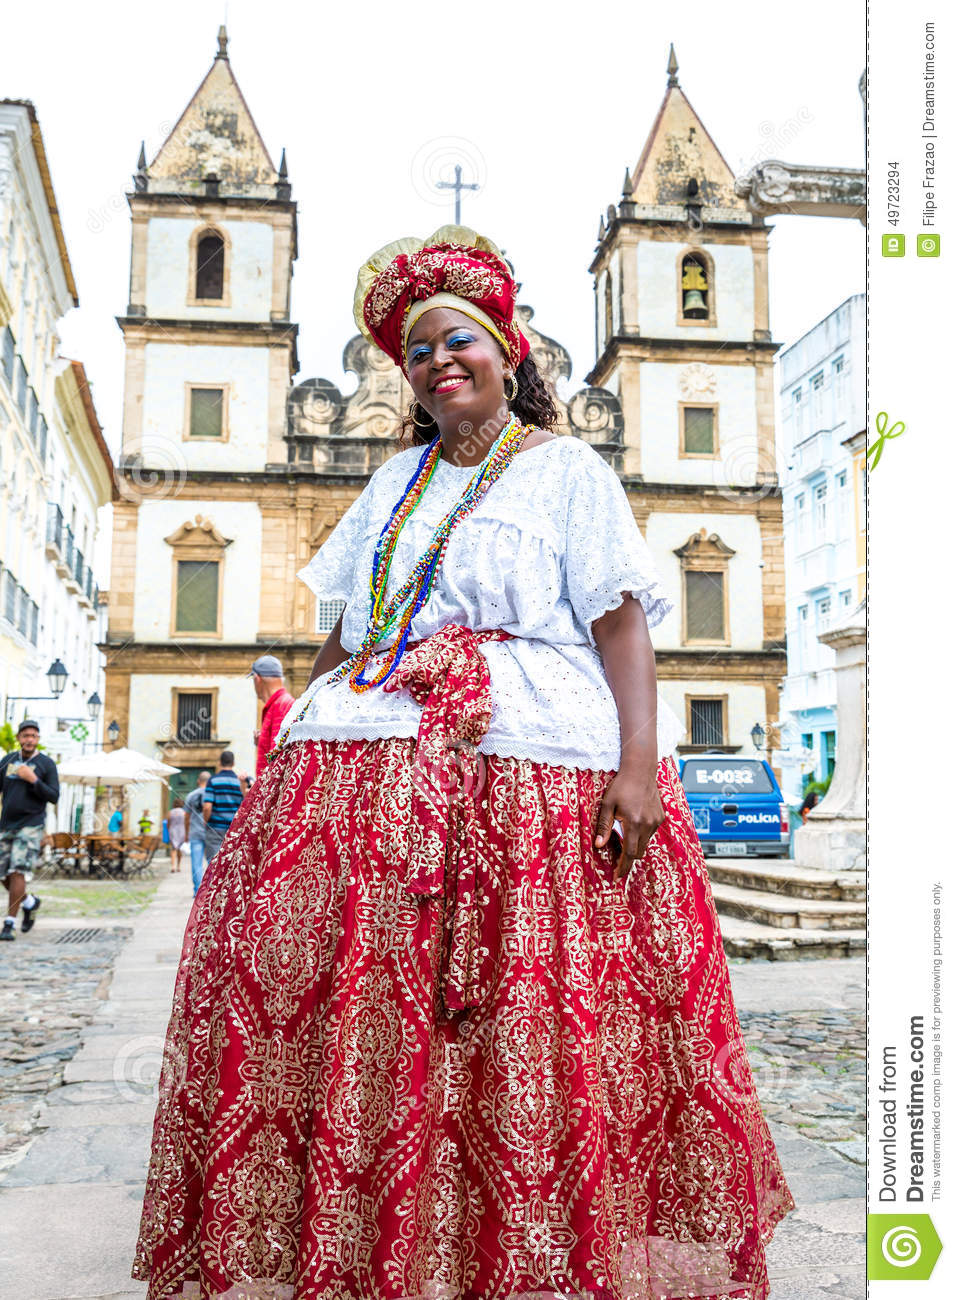 A Brazilian Woman Of African Descent, Smiling, Wearing ...